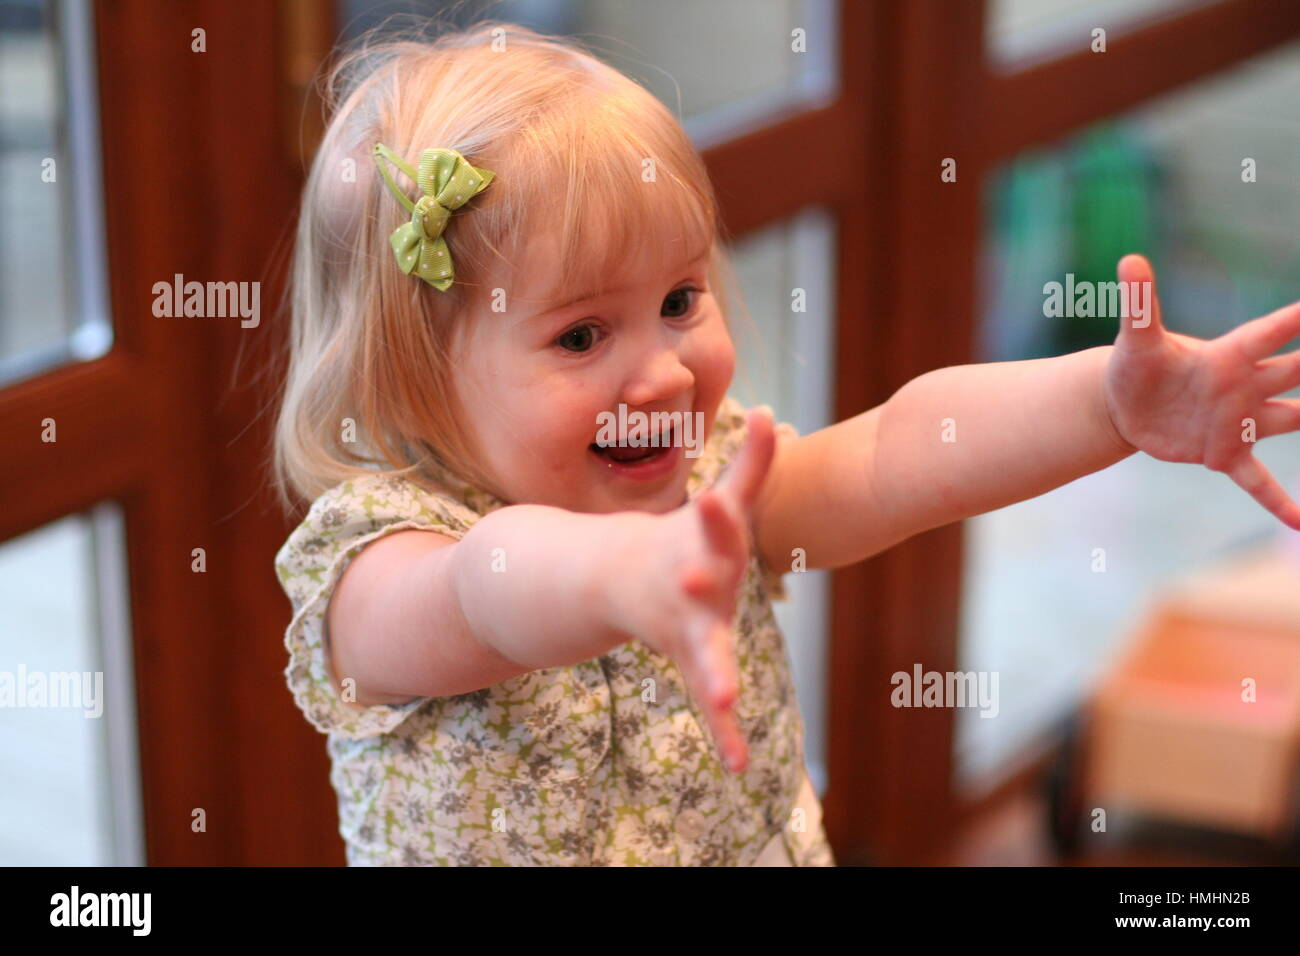 Two year old Little blonde girl toddler child kid arms outstretched delight  big open smile very happy overjoyed - Stock Image